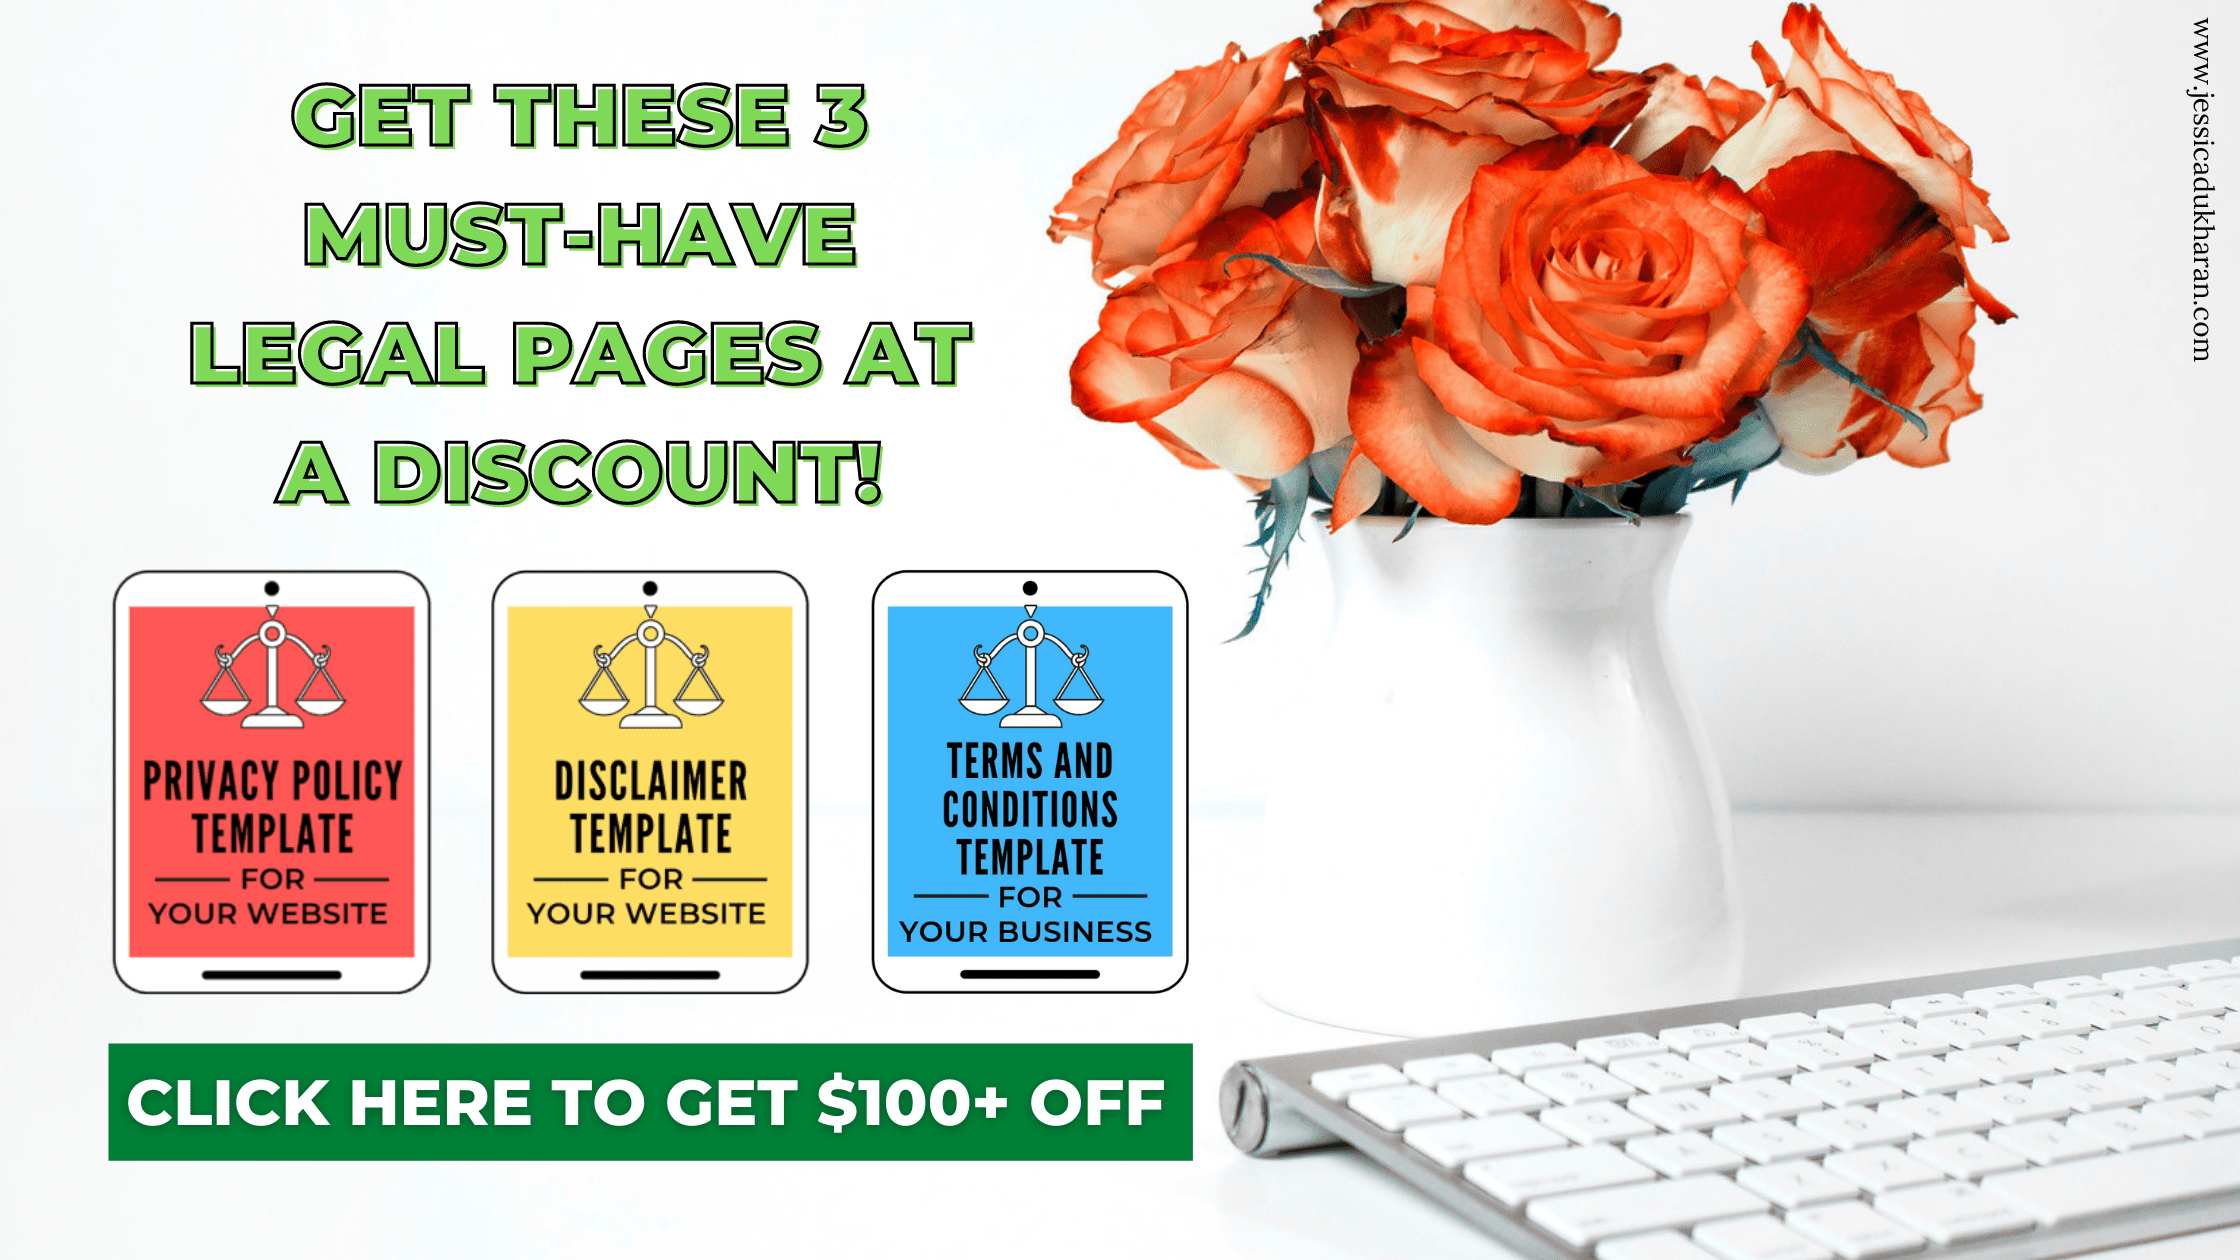 Get these 3 must-have legal pages at a discount! Click here to get $100+ off